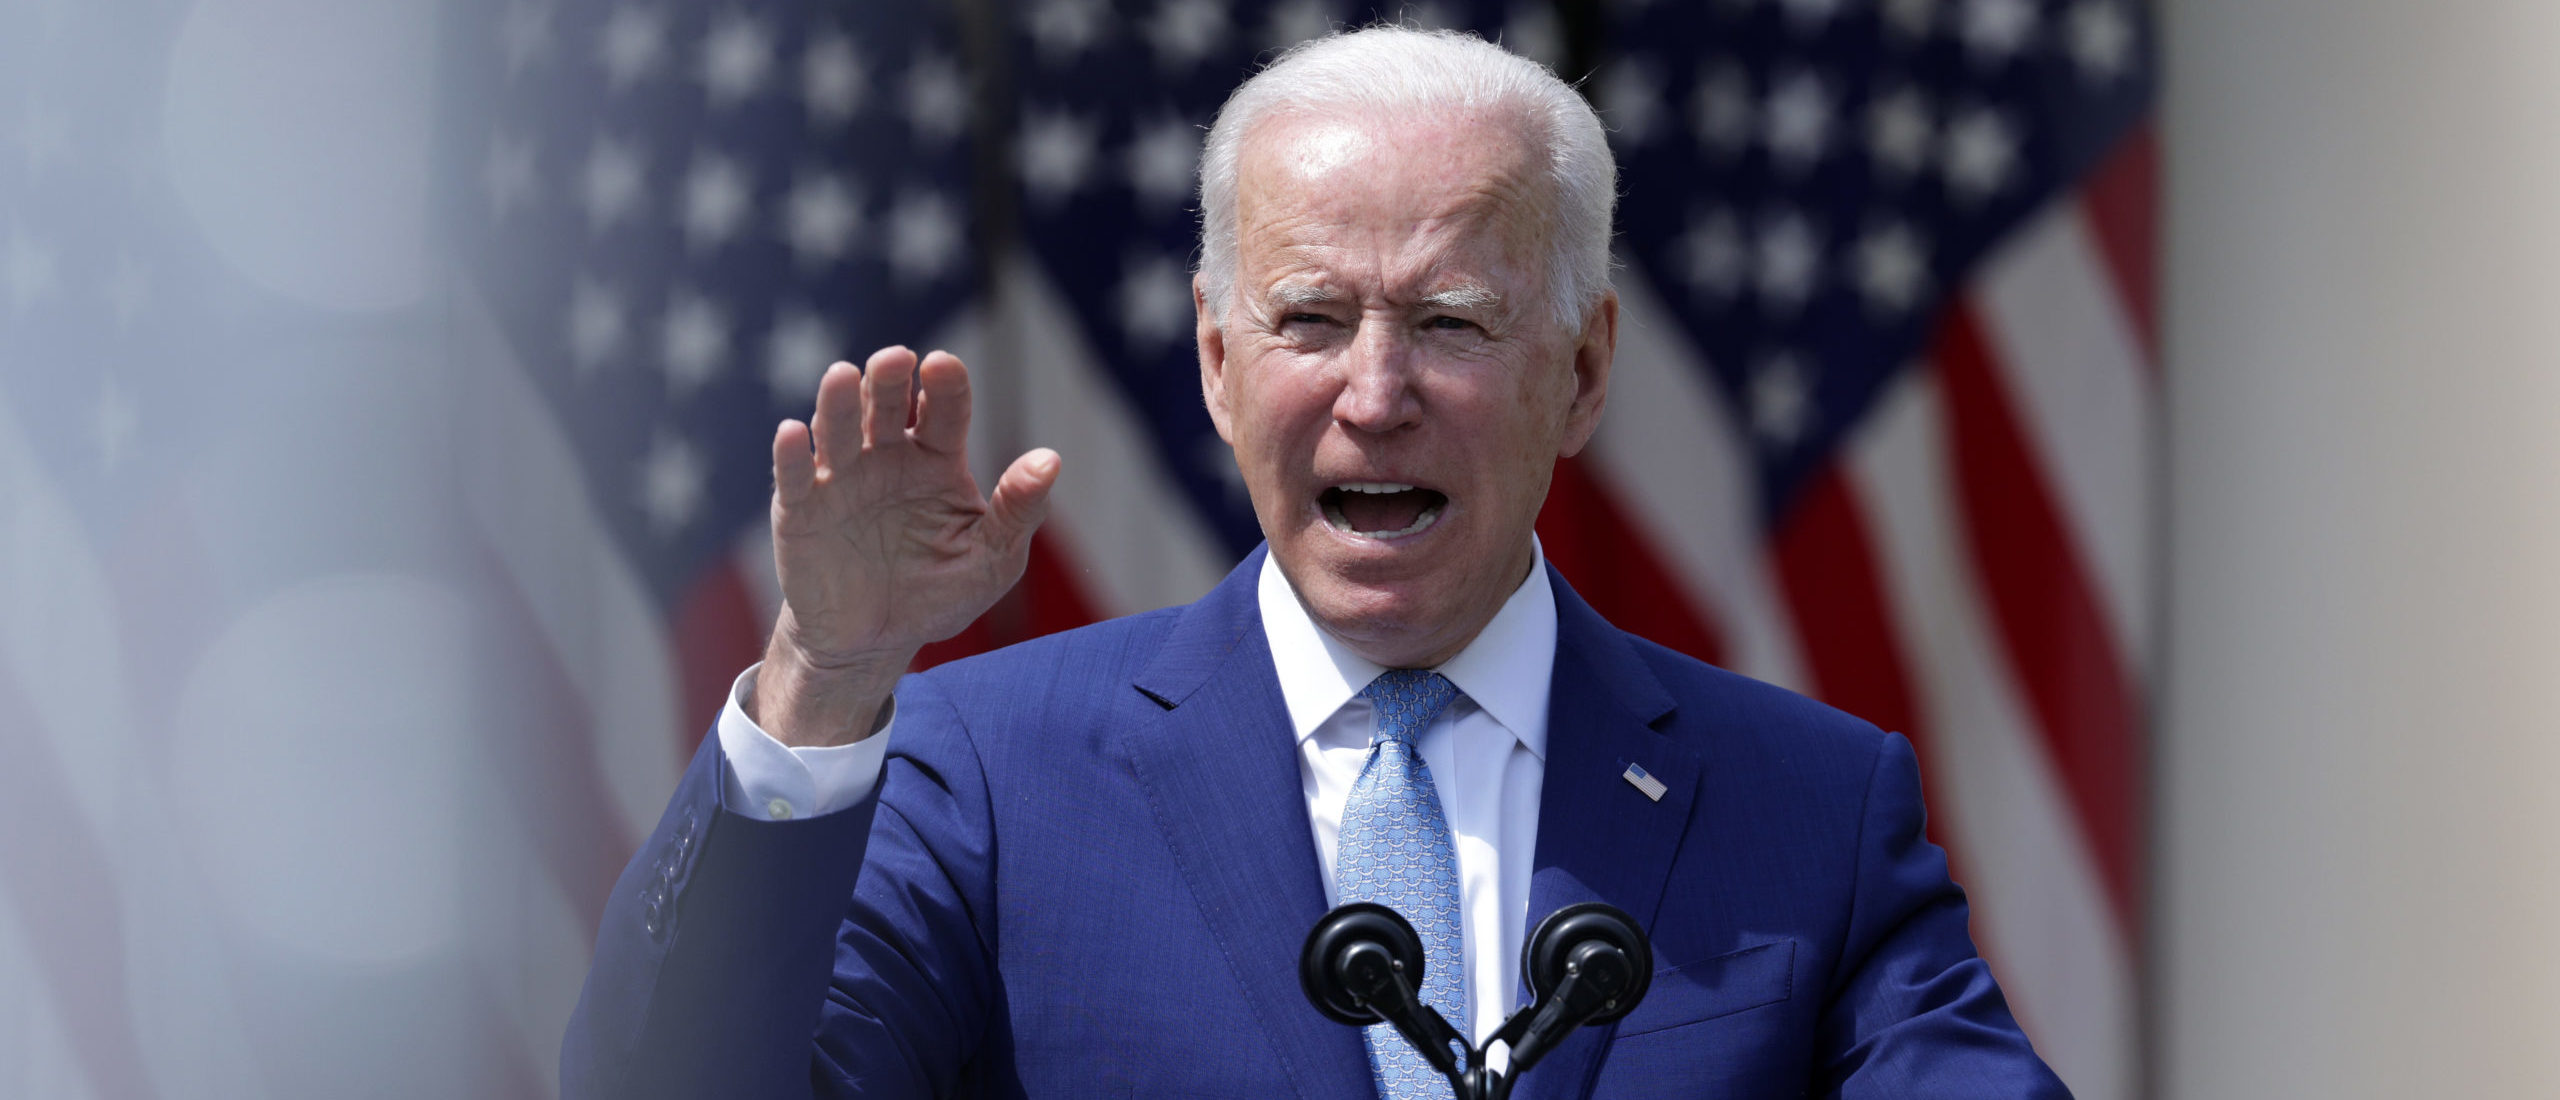 President Joe Biden speaks during an event on gun control in the Rose Garden at the White House Thursday. (Alex Wong/Getty Images)